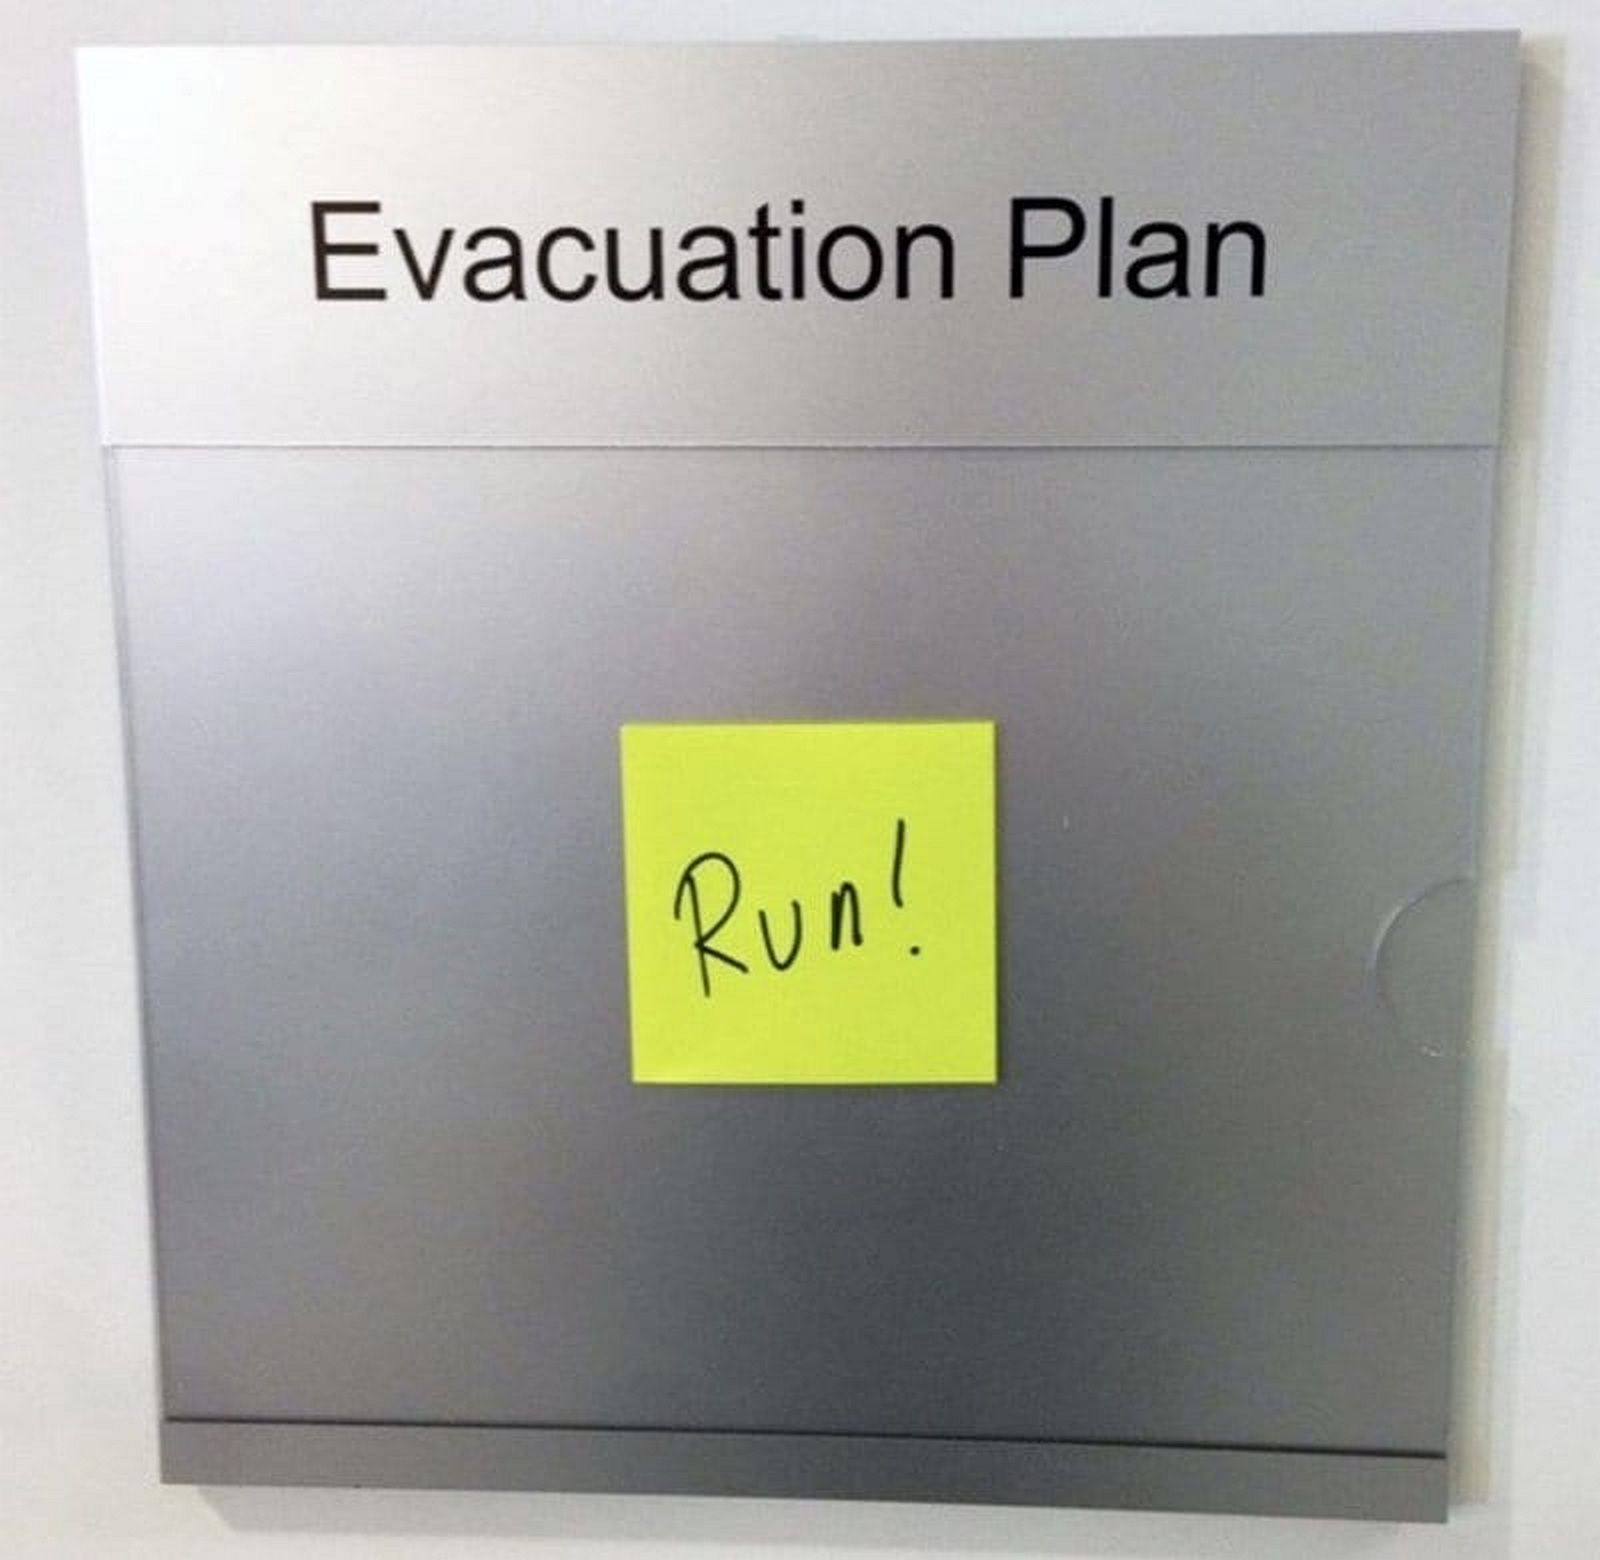 We updated our evacuation plan at work.